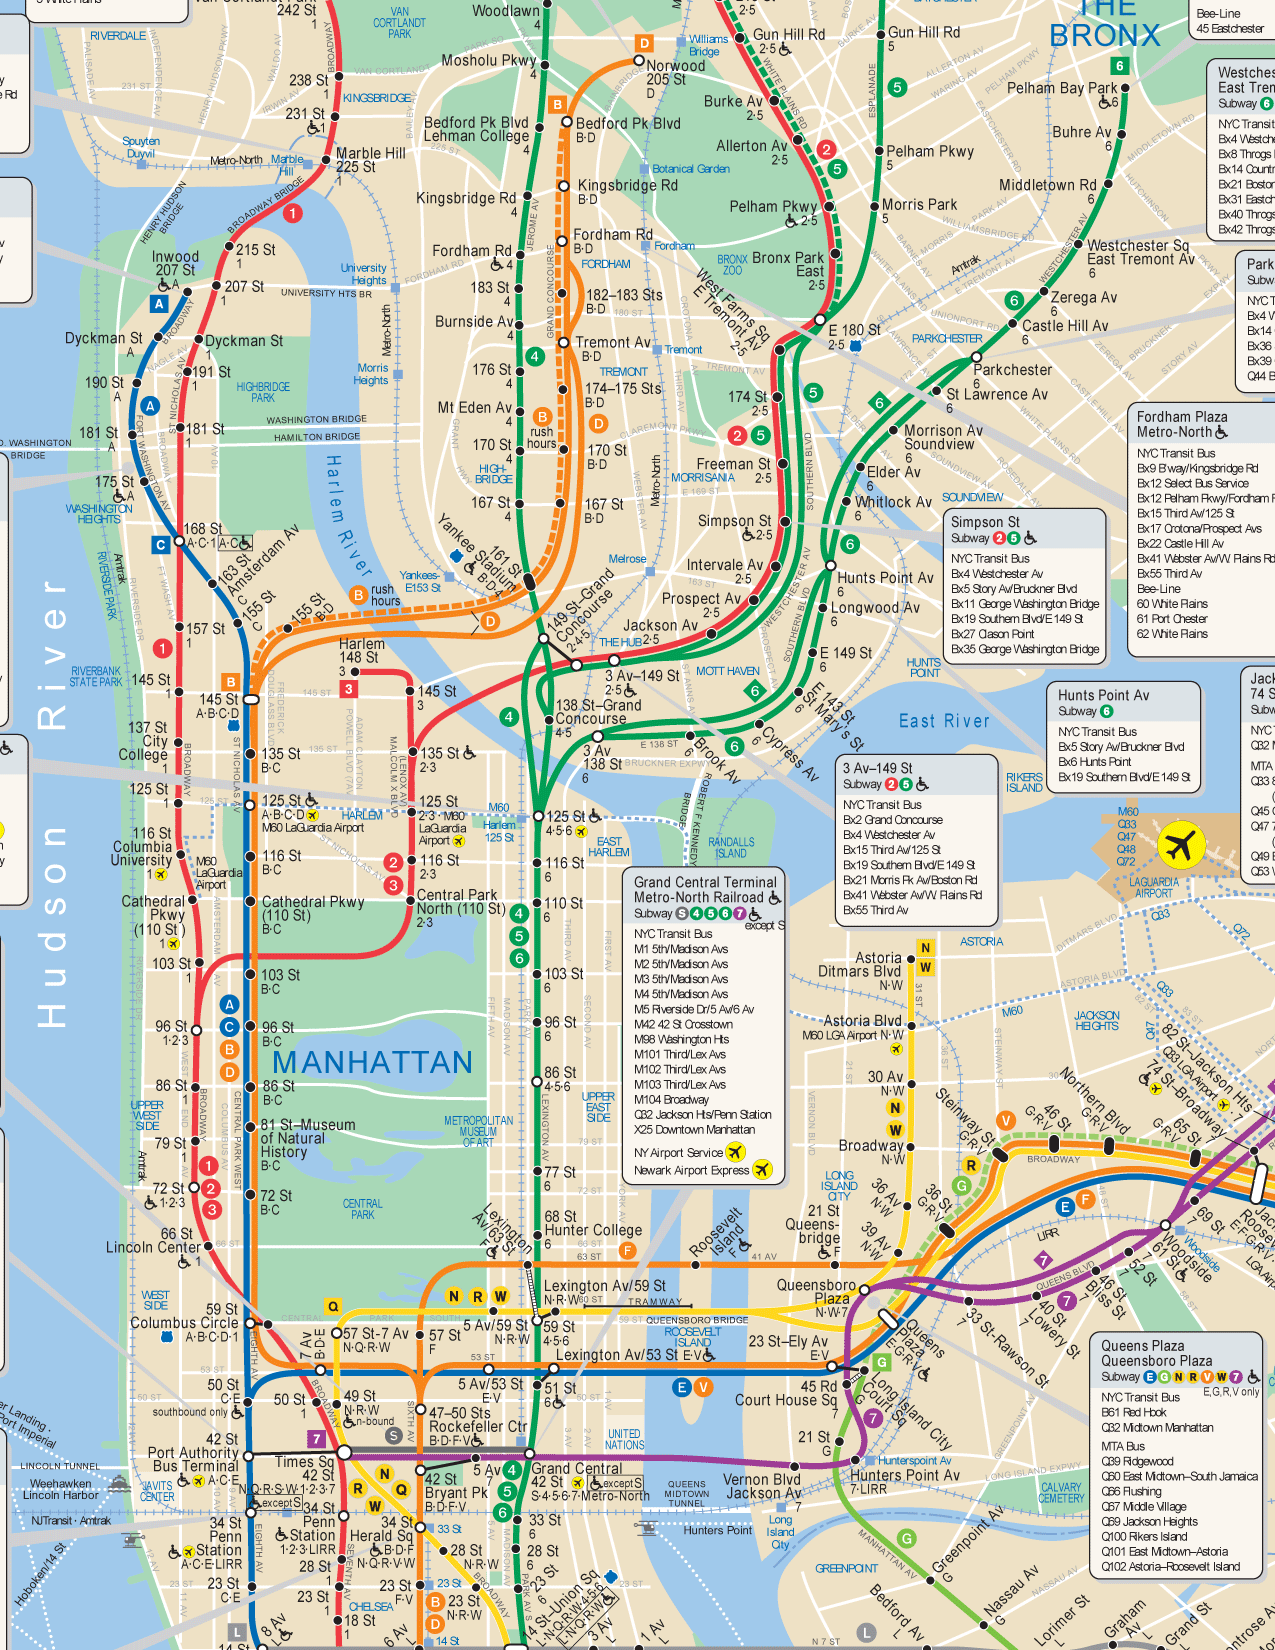 nyc subway map iphone app in 2019 Nyc subway map, Nyc